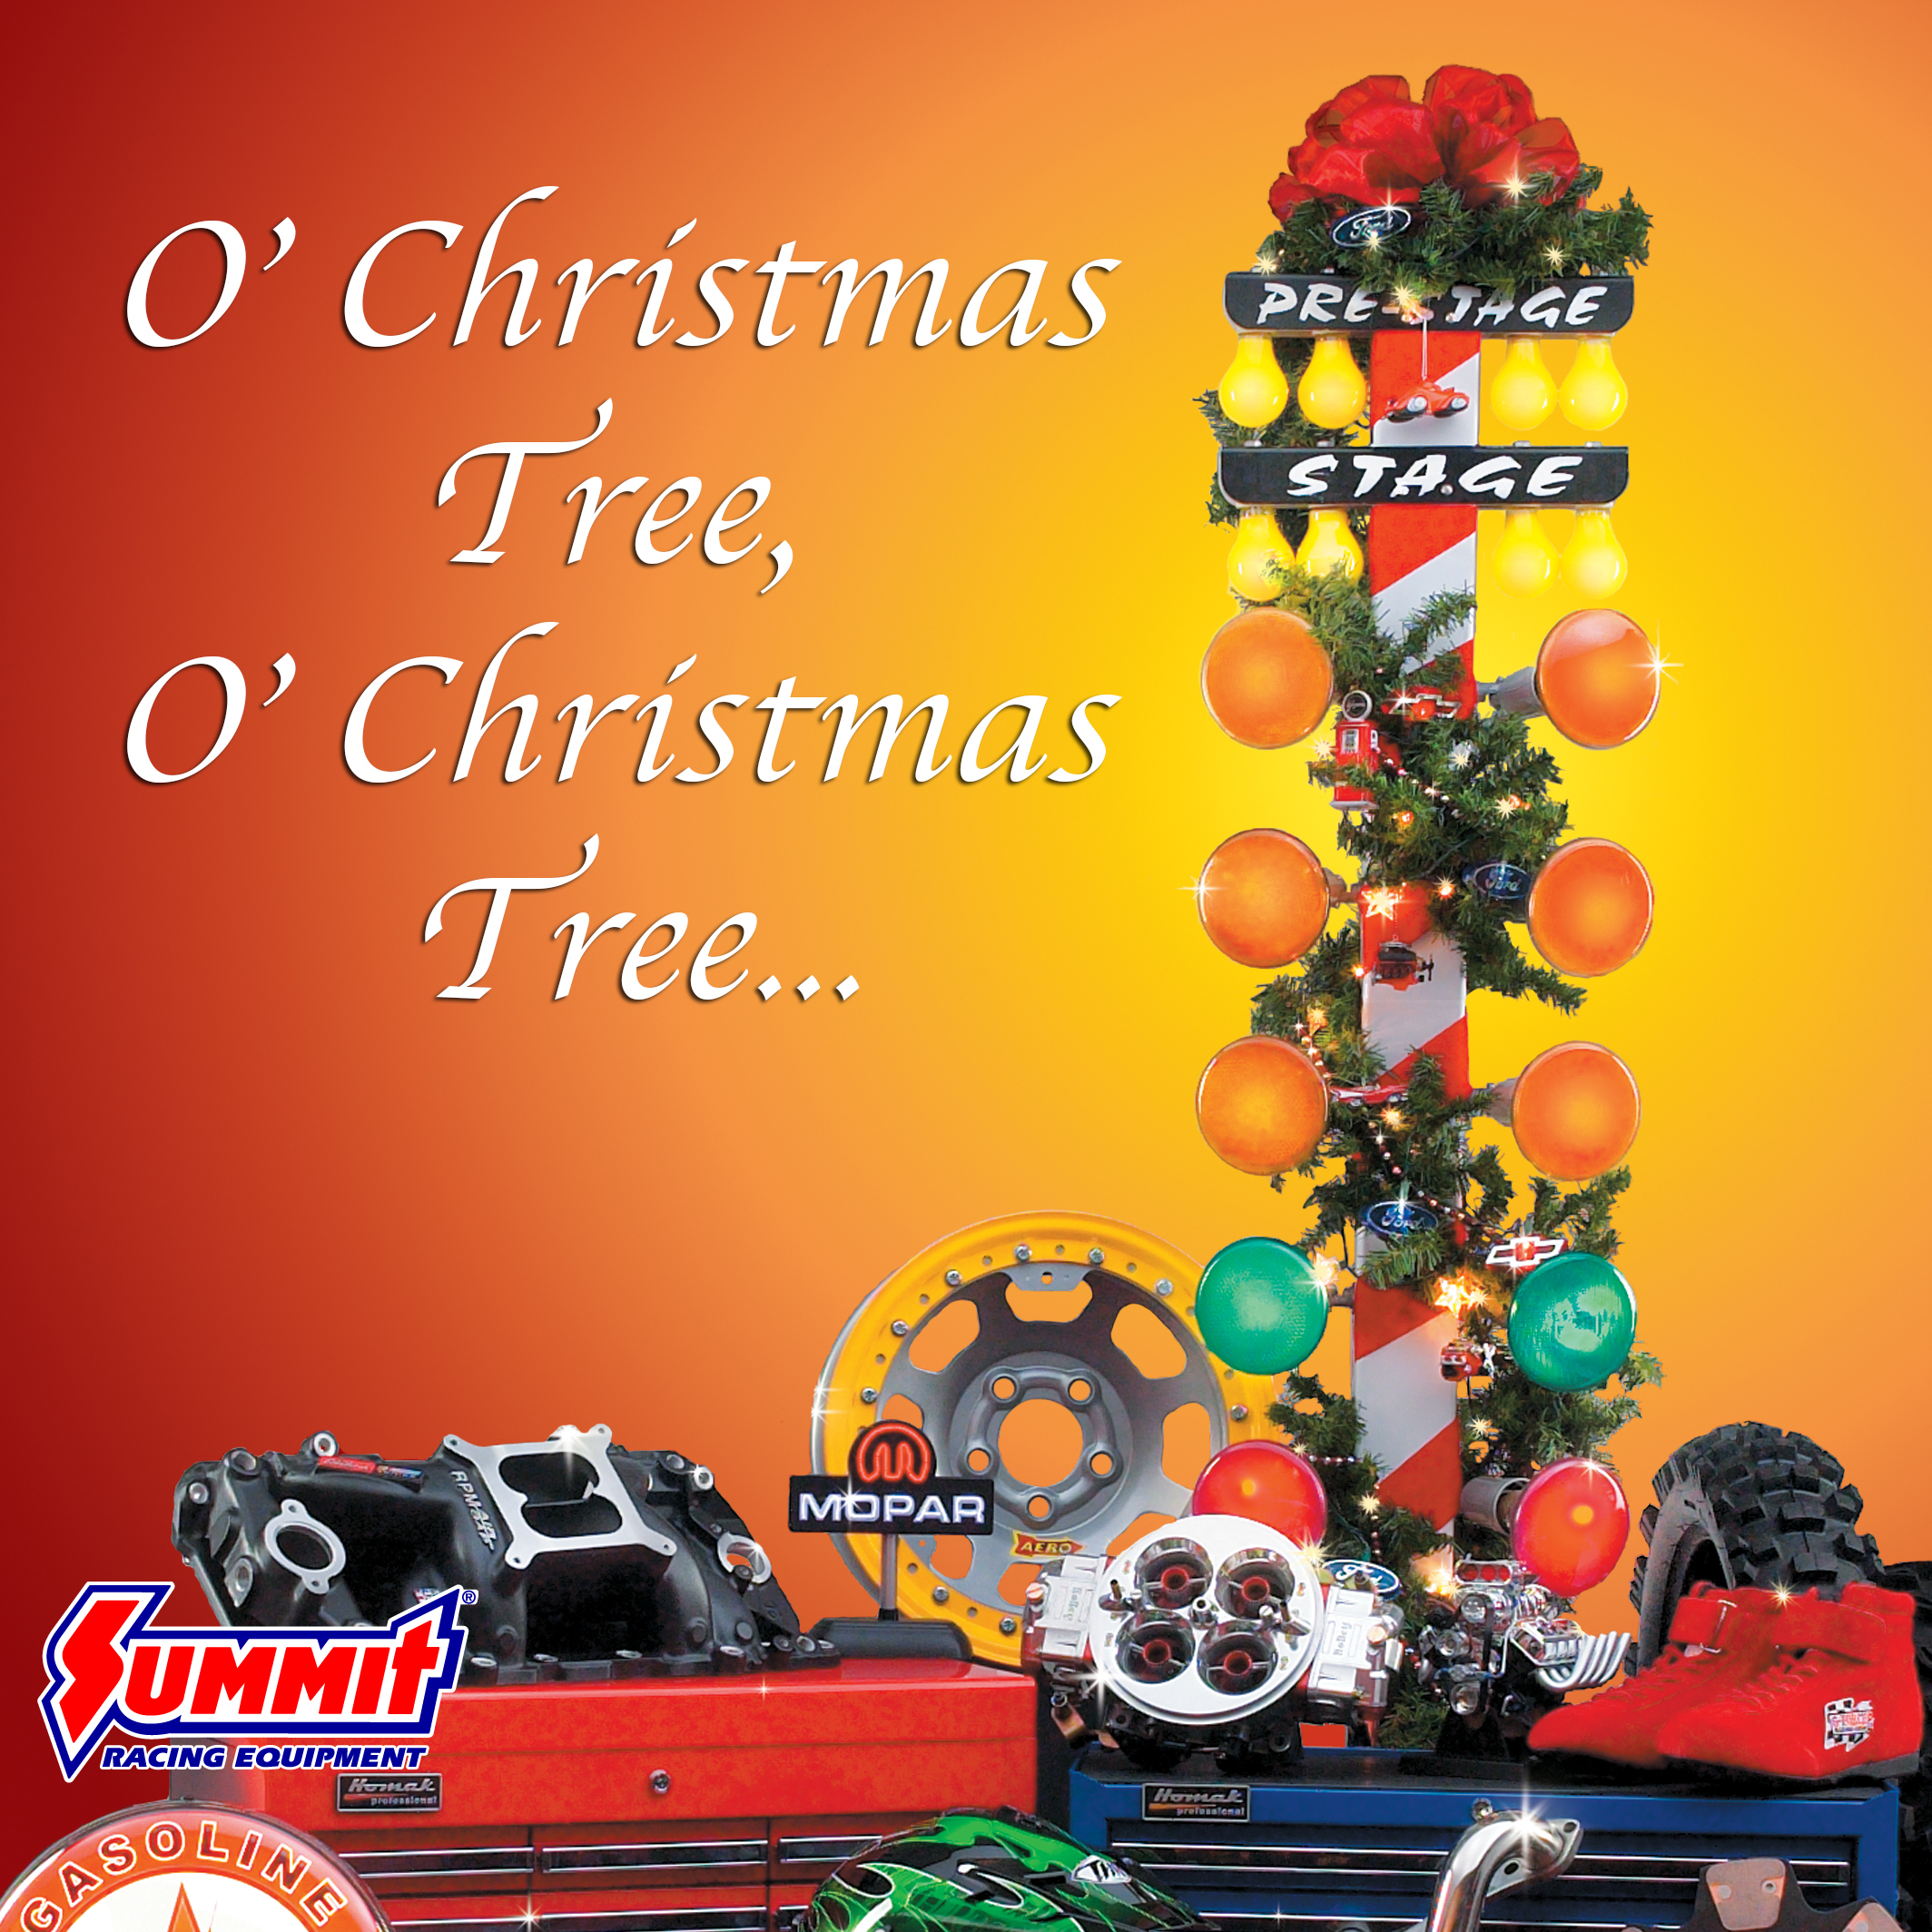 Seasons greetings 8 gearhead friendly greetings for the holidays card o christmas tree kristyandbryce Images